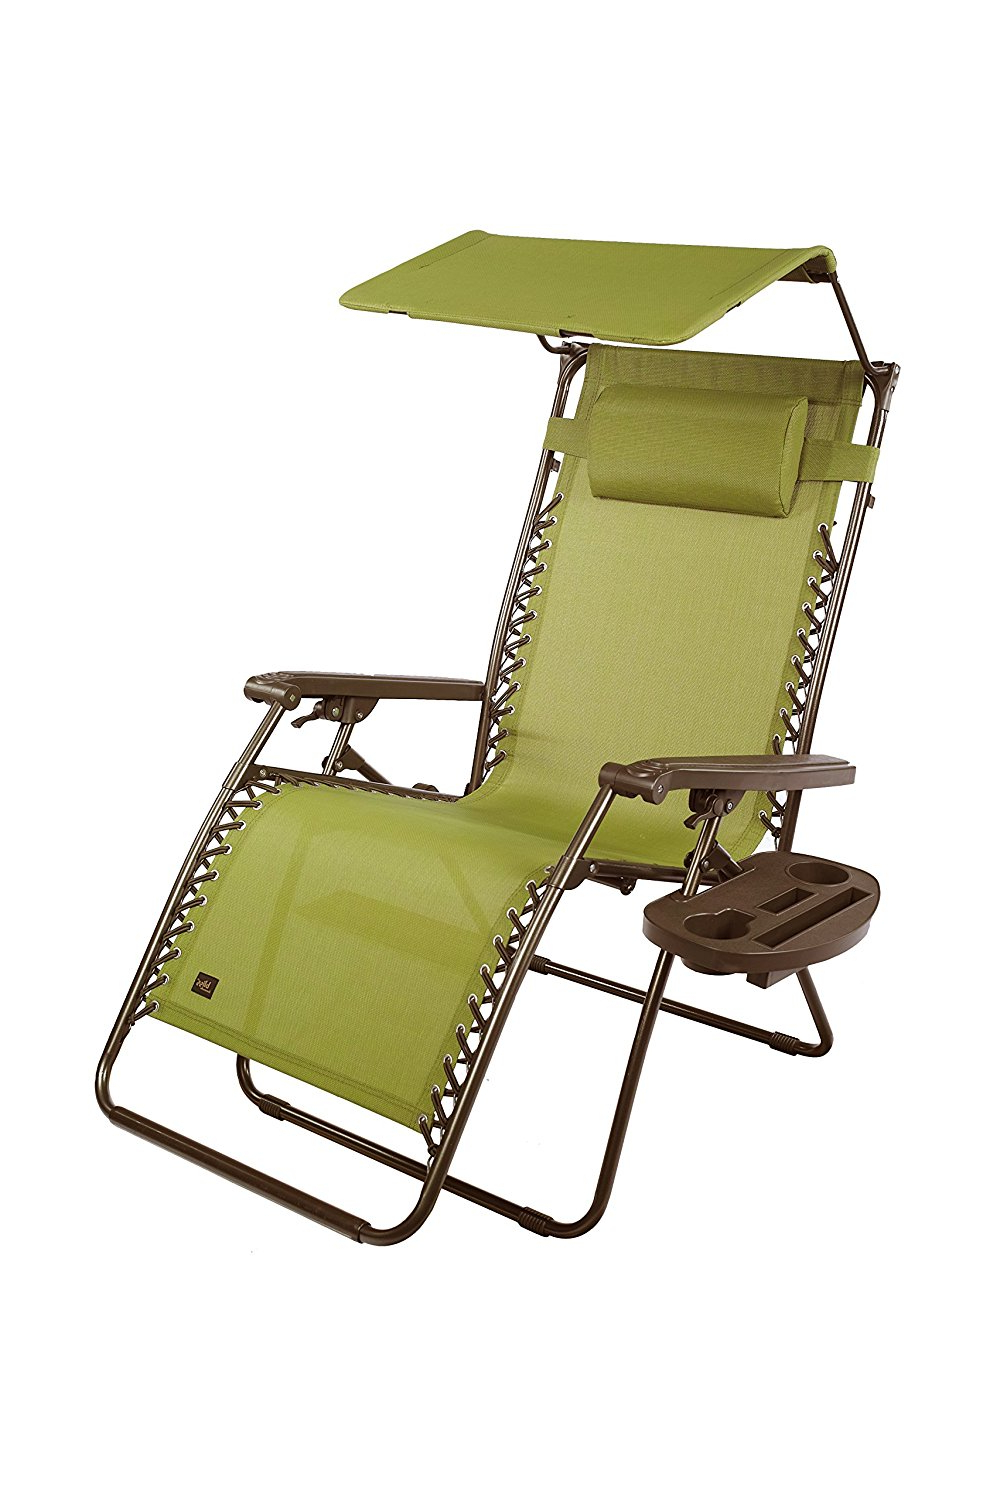 Deluxe Padded Chairs With Canopy And Tray For Well Known Cheap Ute Tray Canopy, Find Ute Tray Canopy Deals On Line At (View 10 of 25)